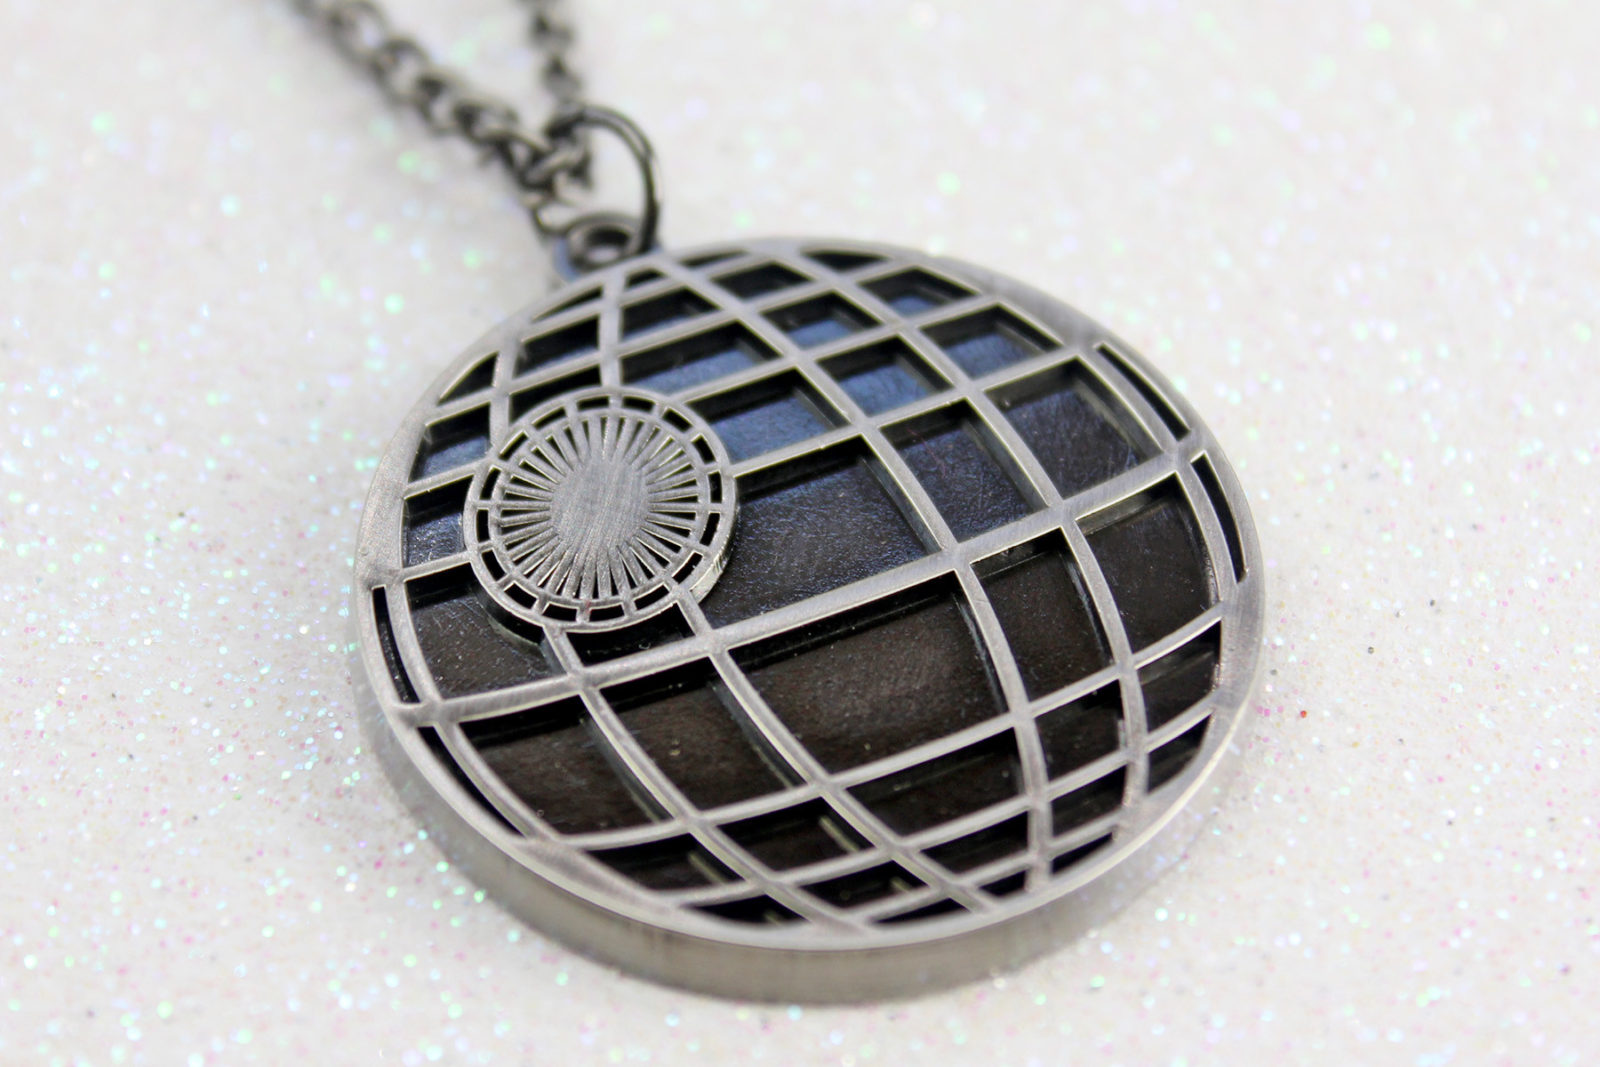 Review – Bioworld Death Star necklace